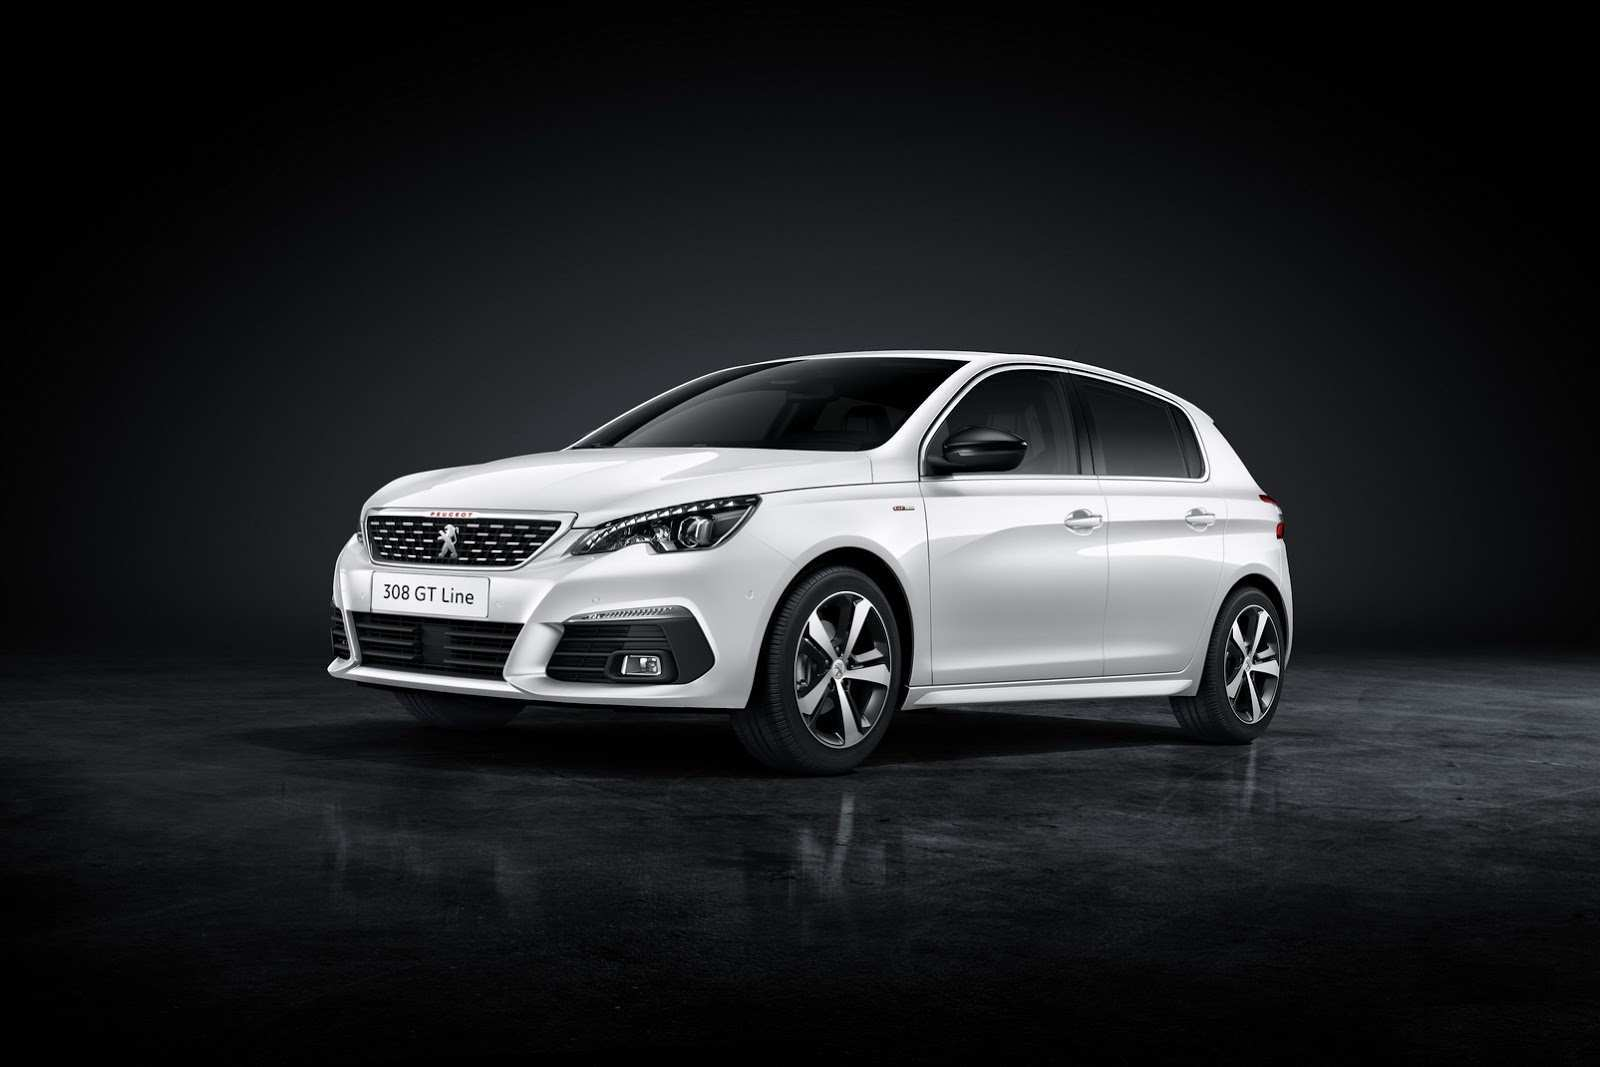 69 Concept of 2019 Peugeot 308 Reviews with 2019 Peugeot 308